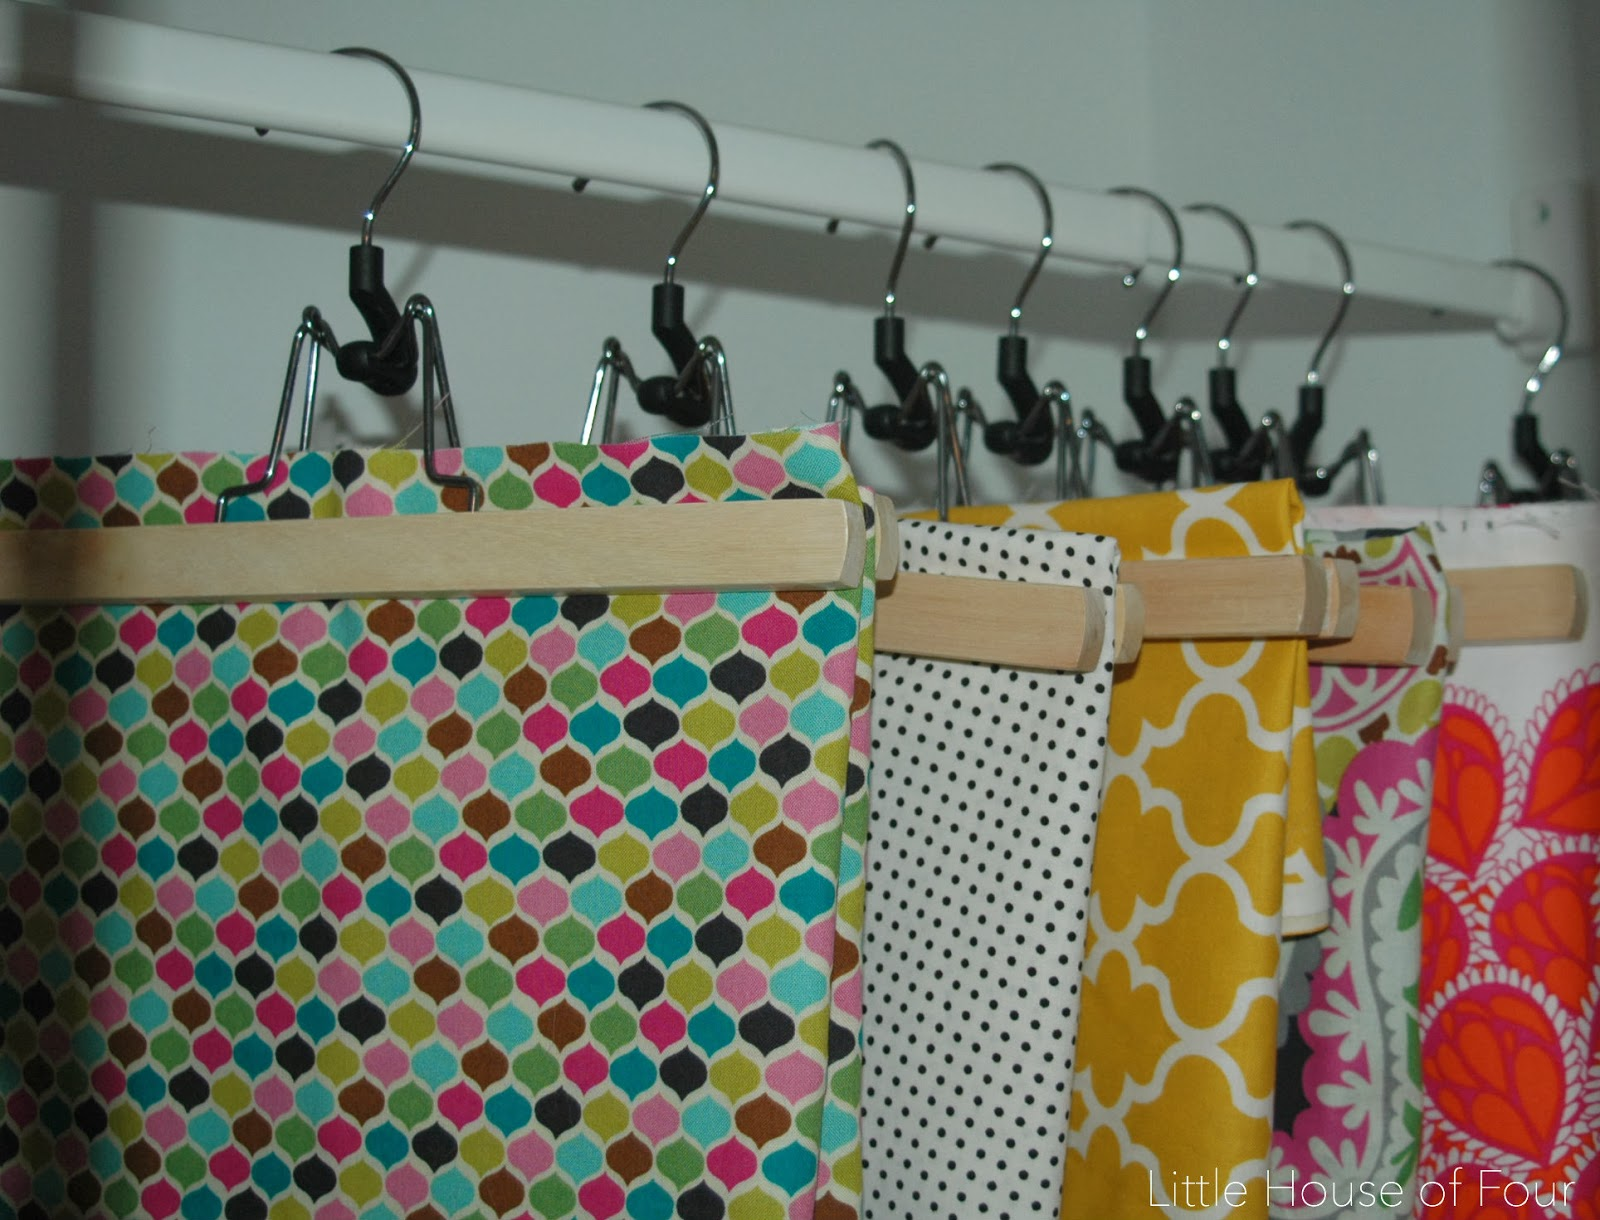 Hanging fabric with pant hangers